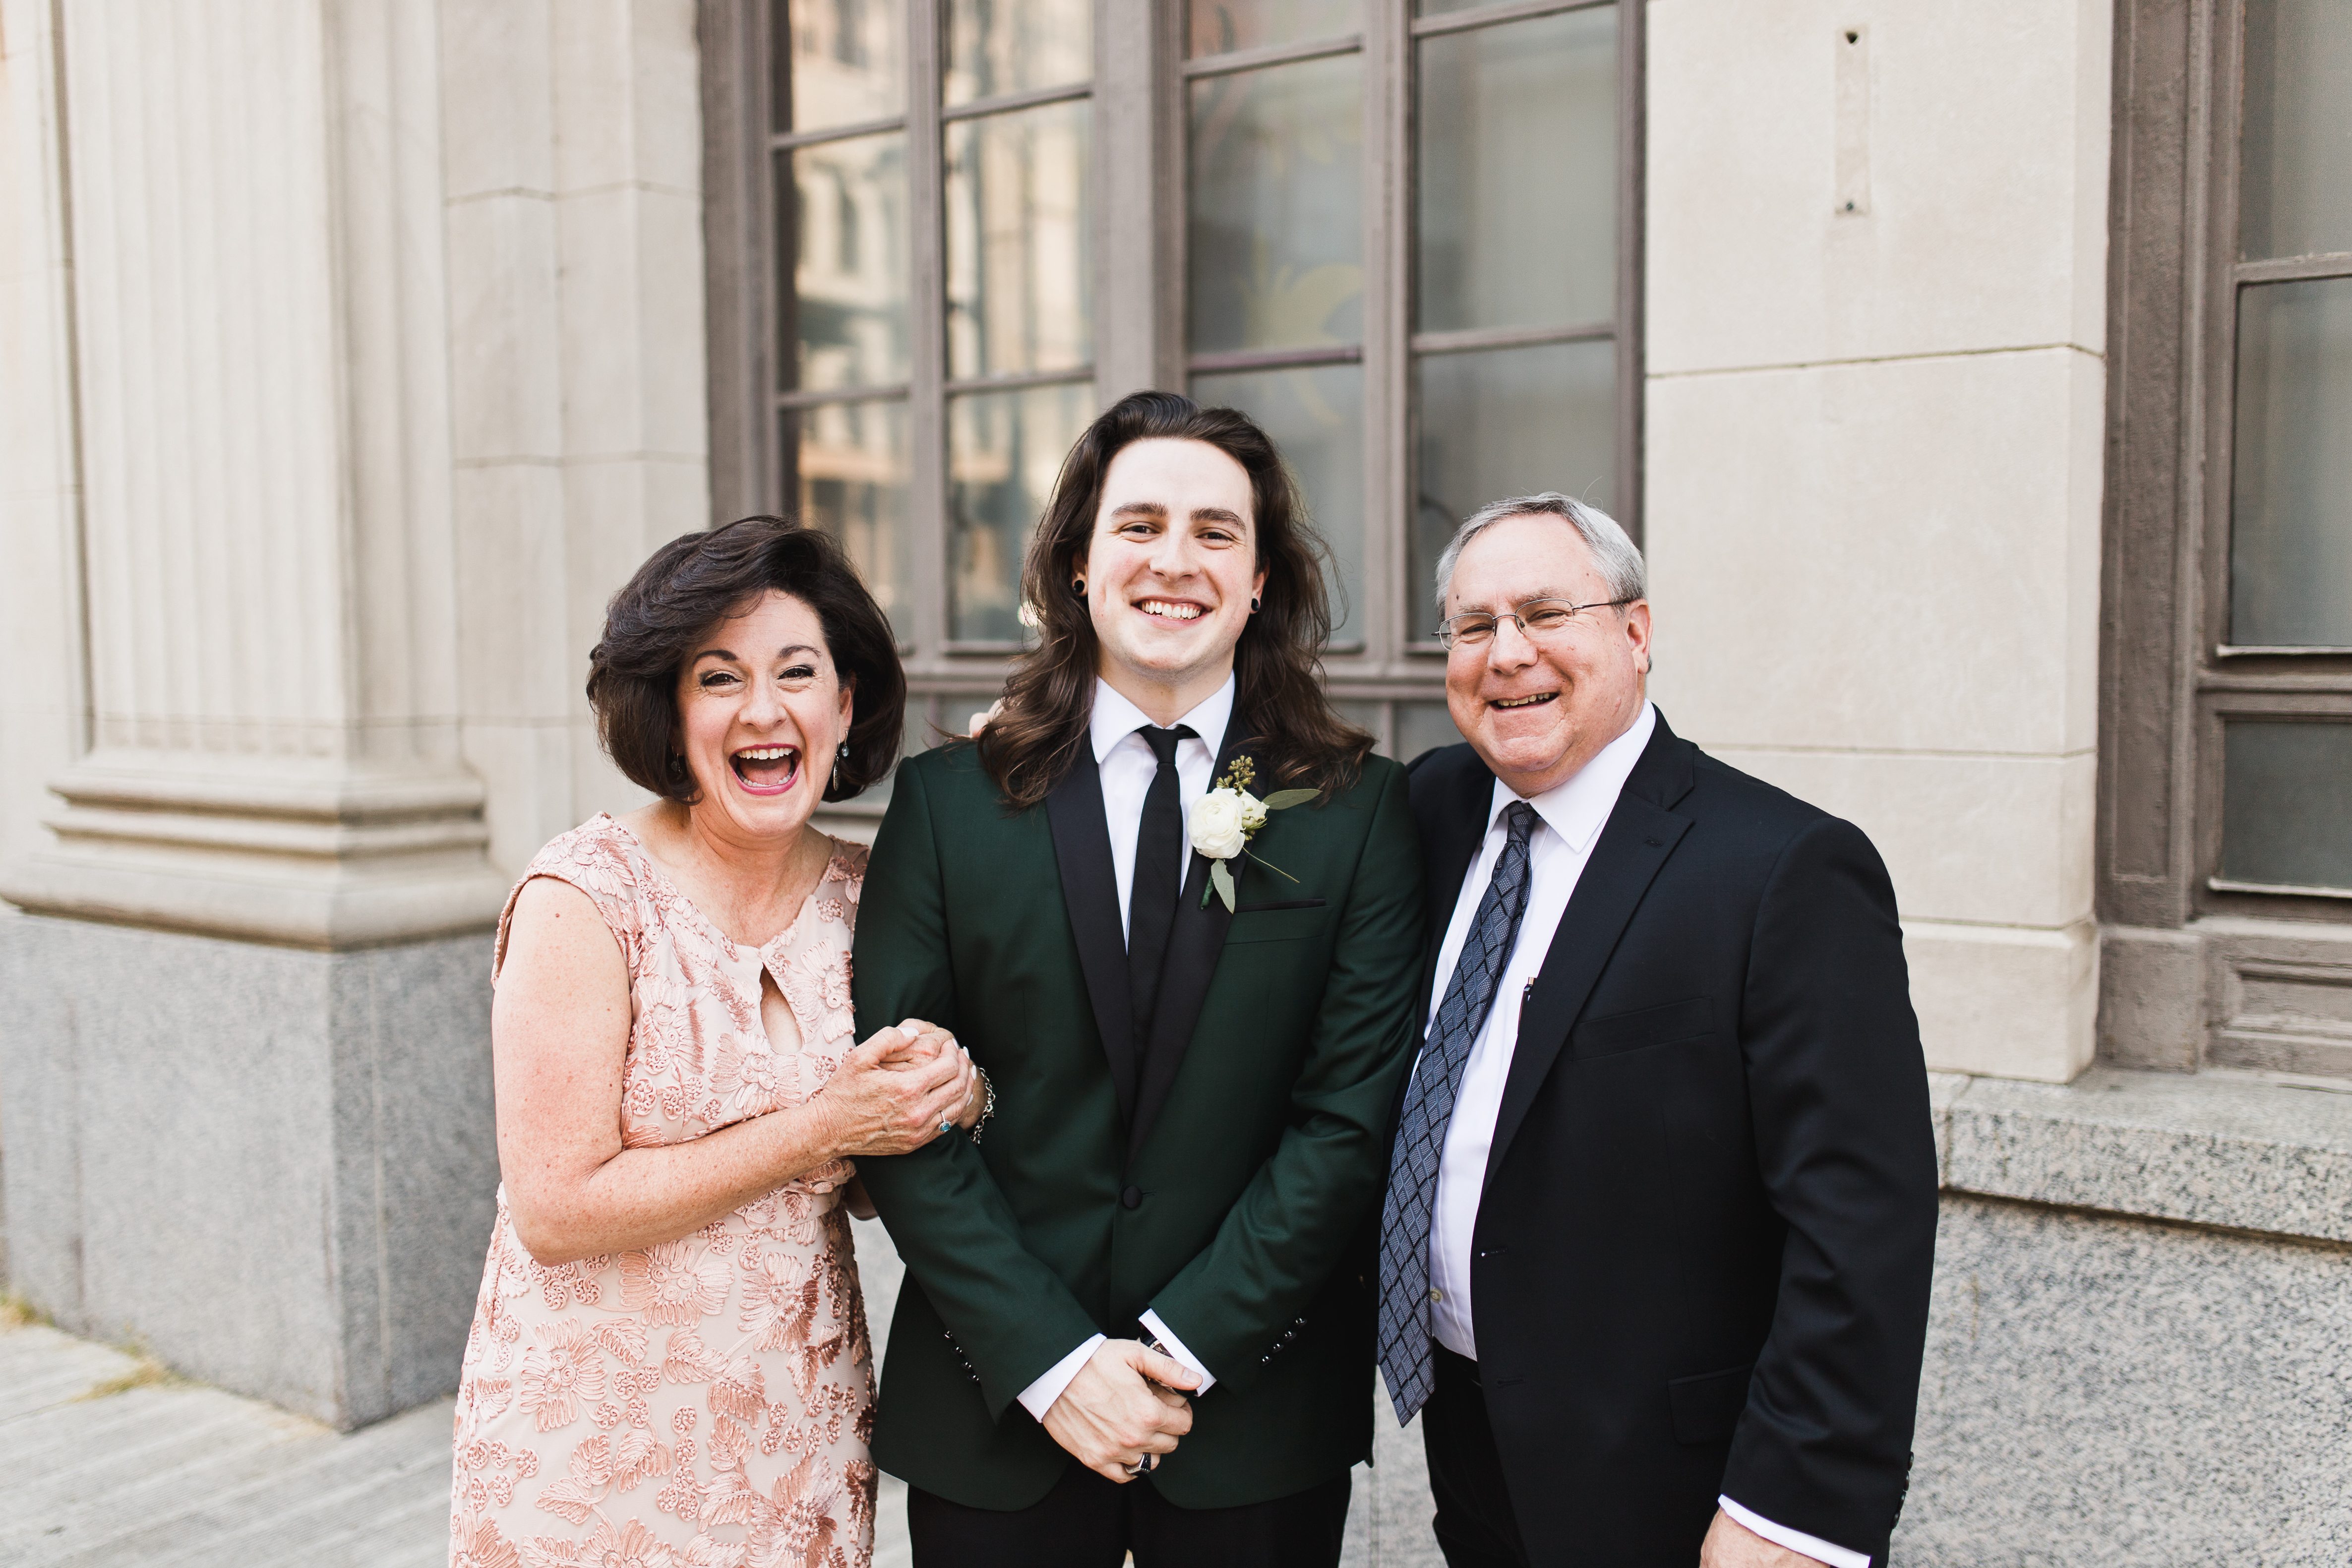 family formals laughing